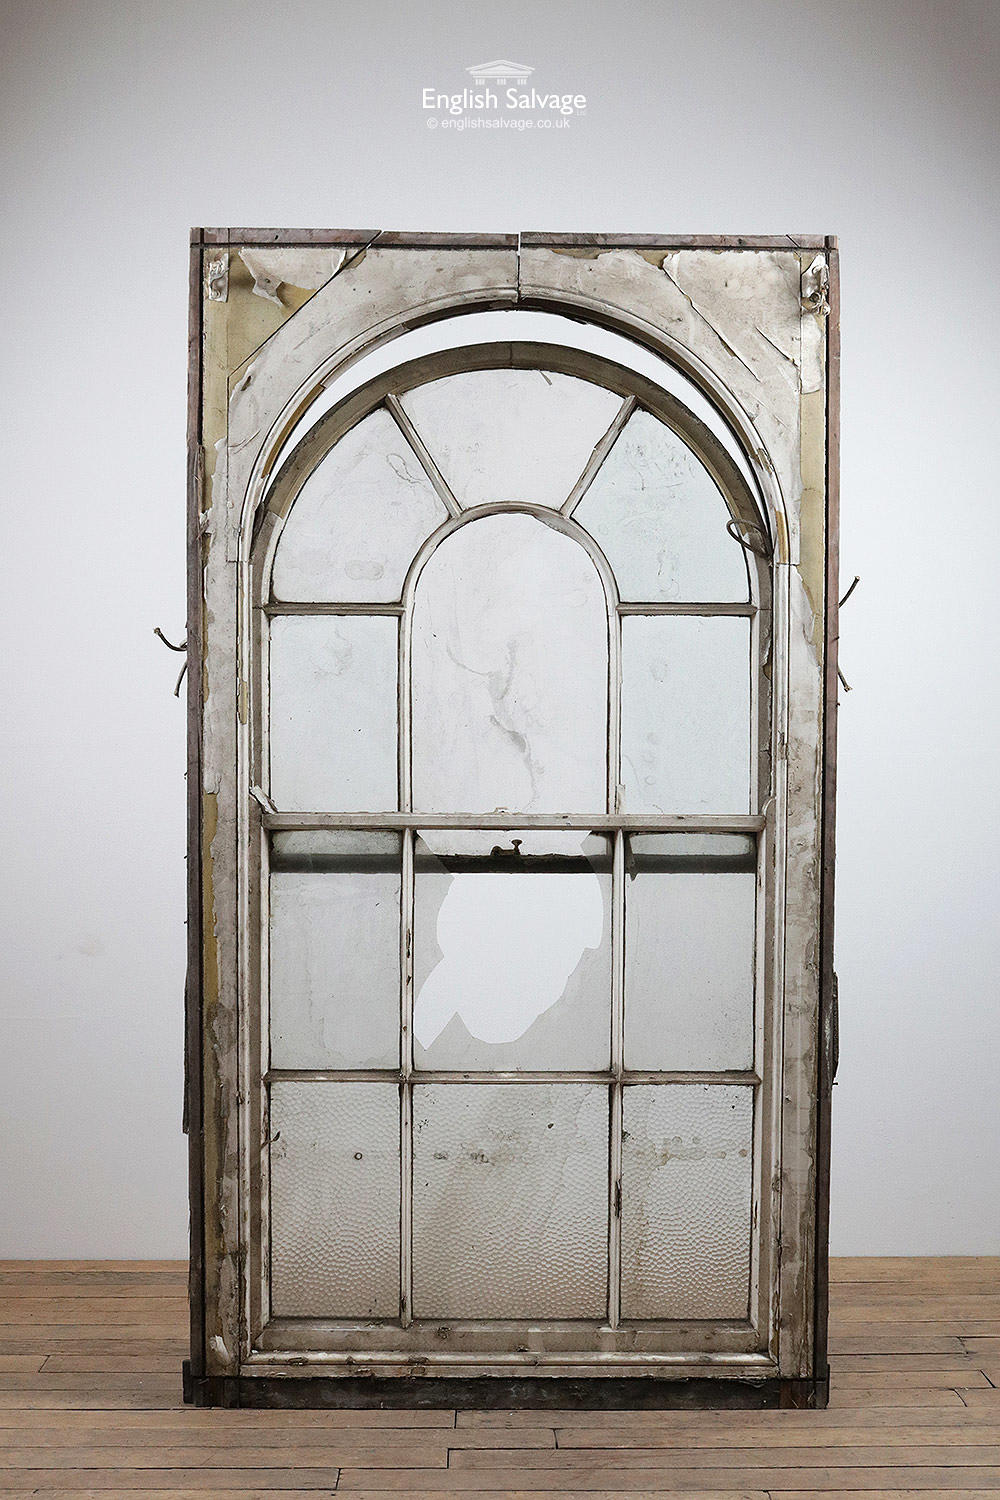 Old Arched Sash Window For Repair Restoration